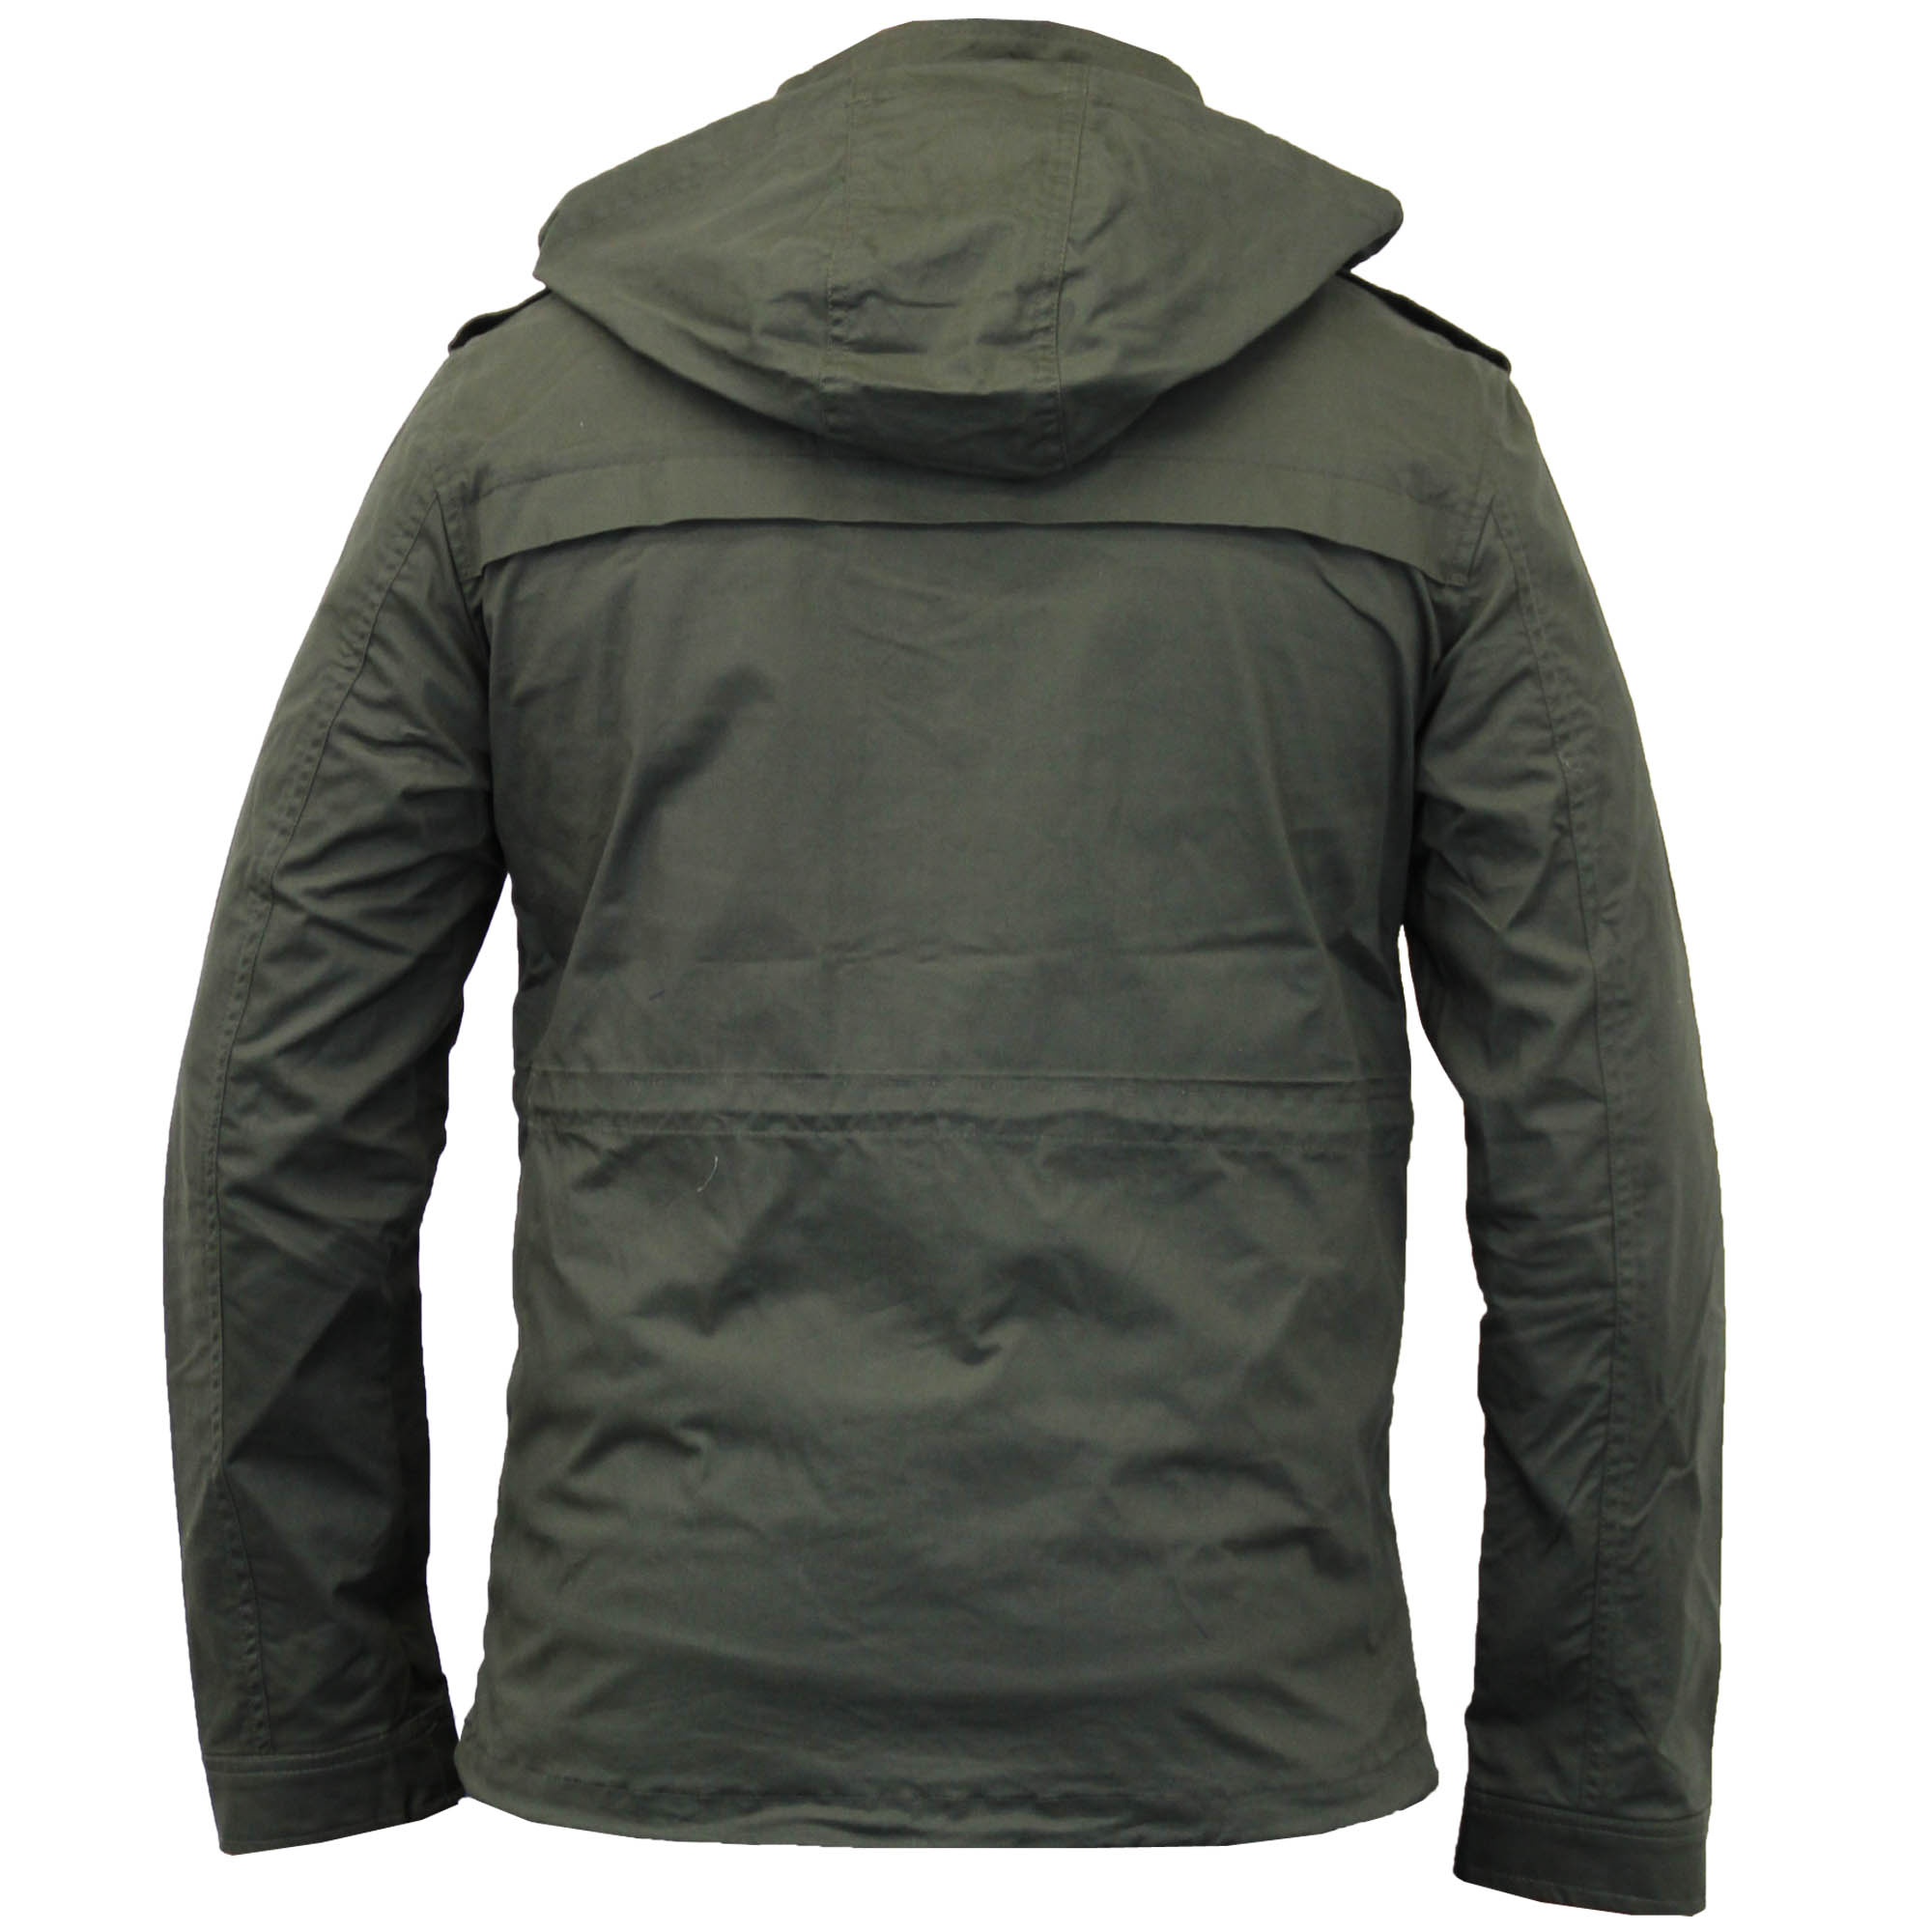 Jacket Volcom Men's Weight Hernan Military Heavy Hooded That all publications and presentations (research, educational, or outreach) deriving from the use .